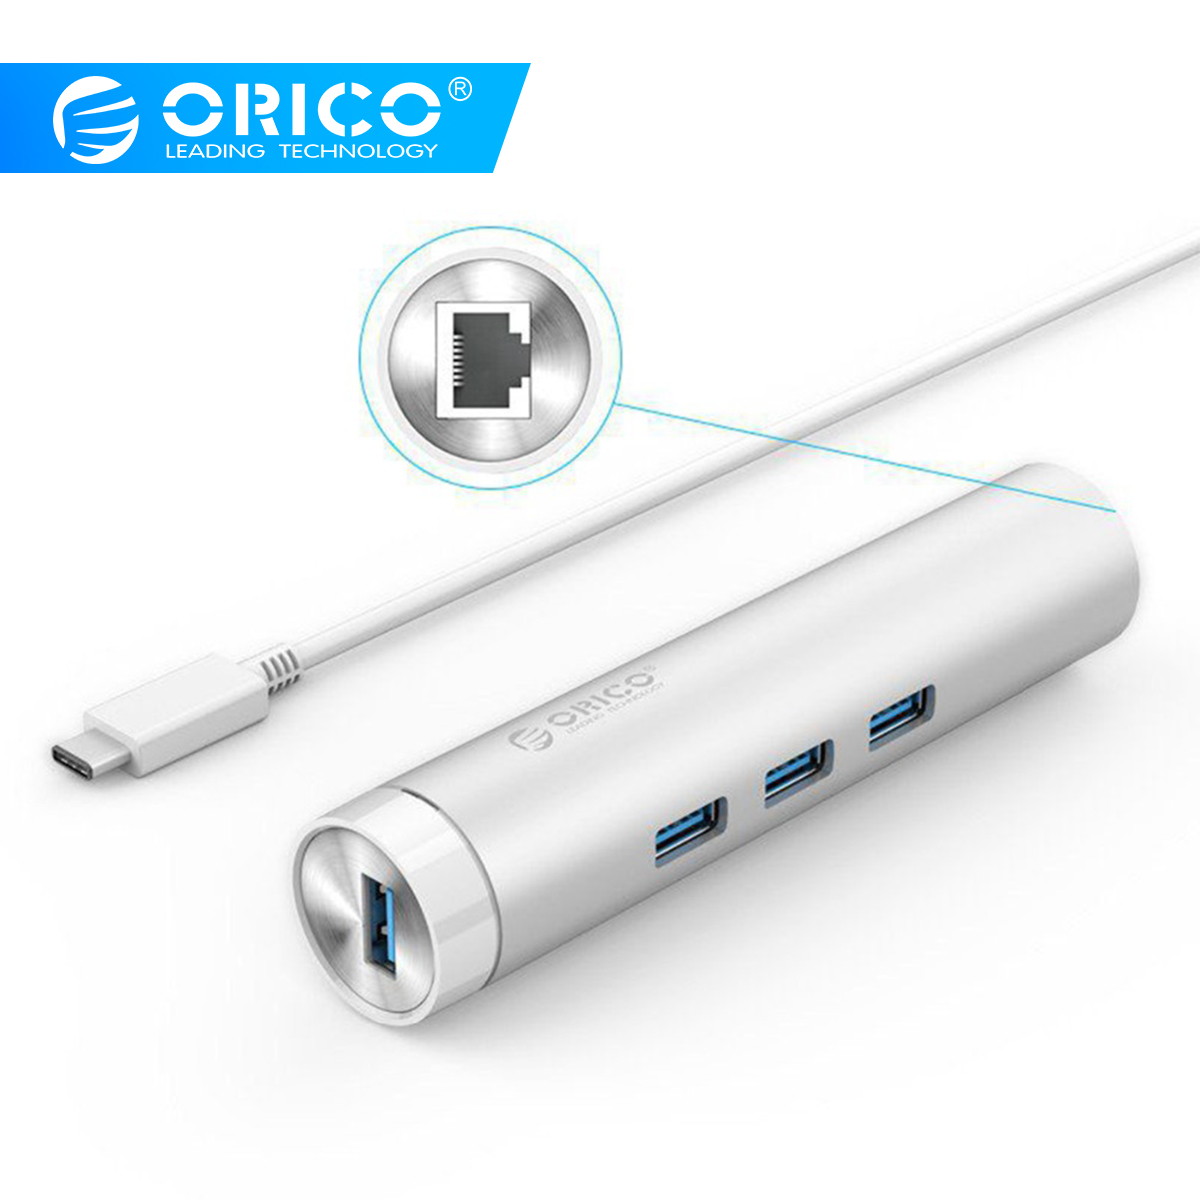 ORICO ARH3L-U3 Aluminum Round USB3.0 HUB with RJ45 Port USB A to Type-C for Apple Laptop Macbook Surface Pad Perfectly - Silver